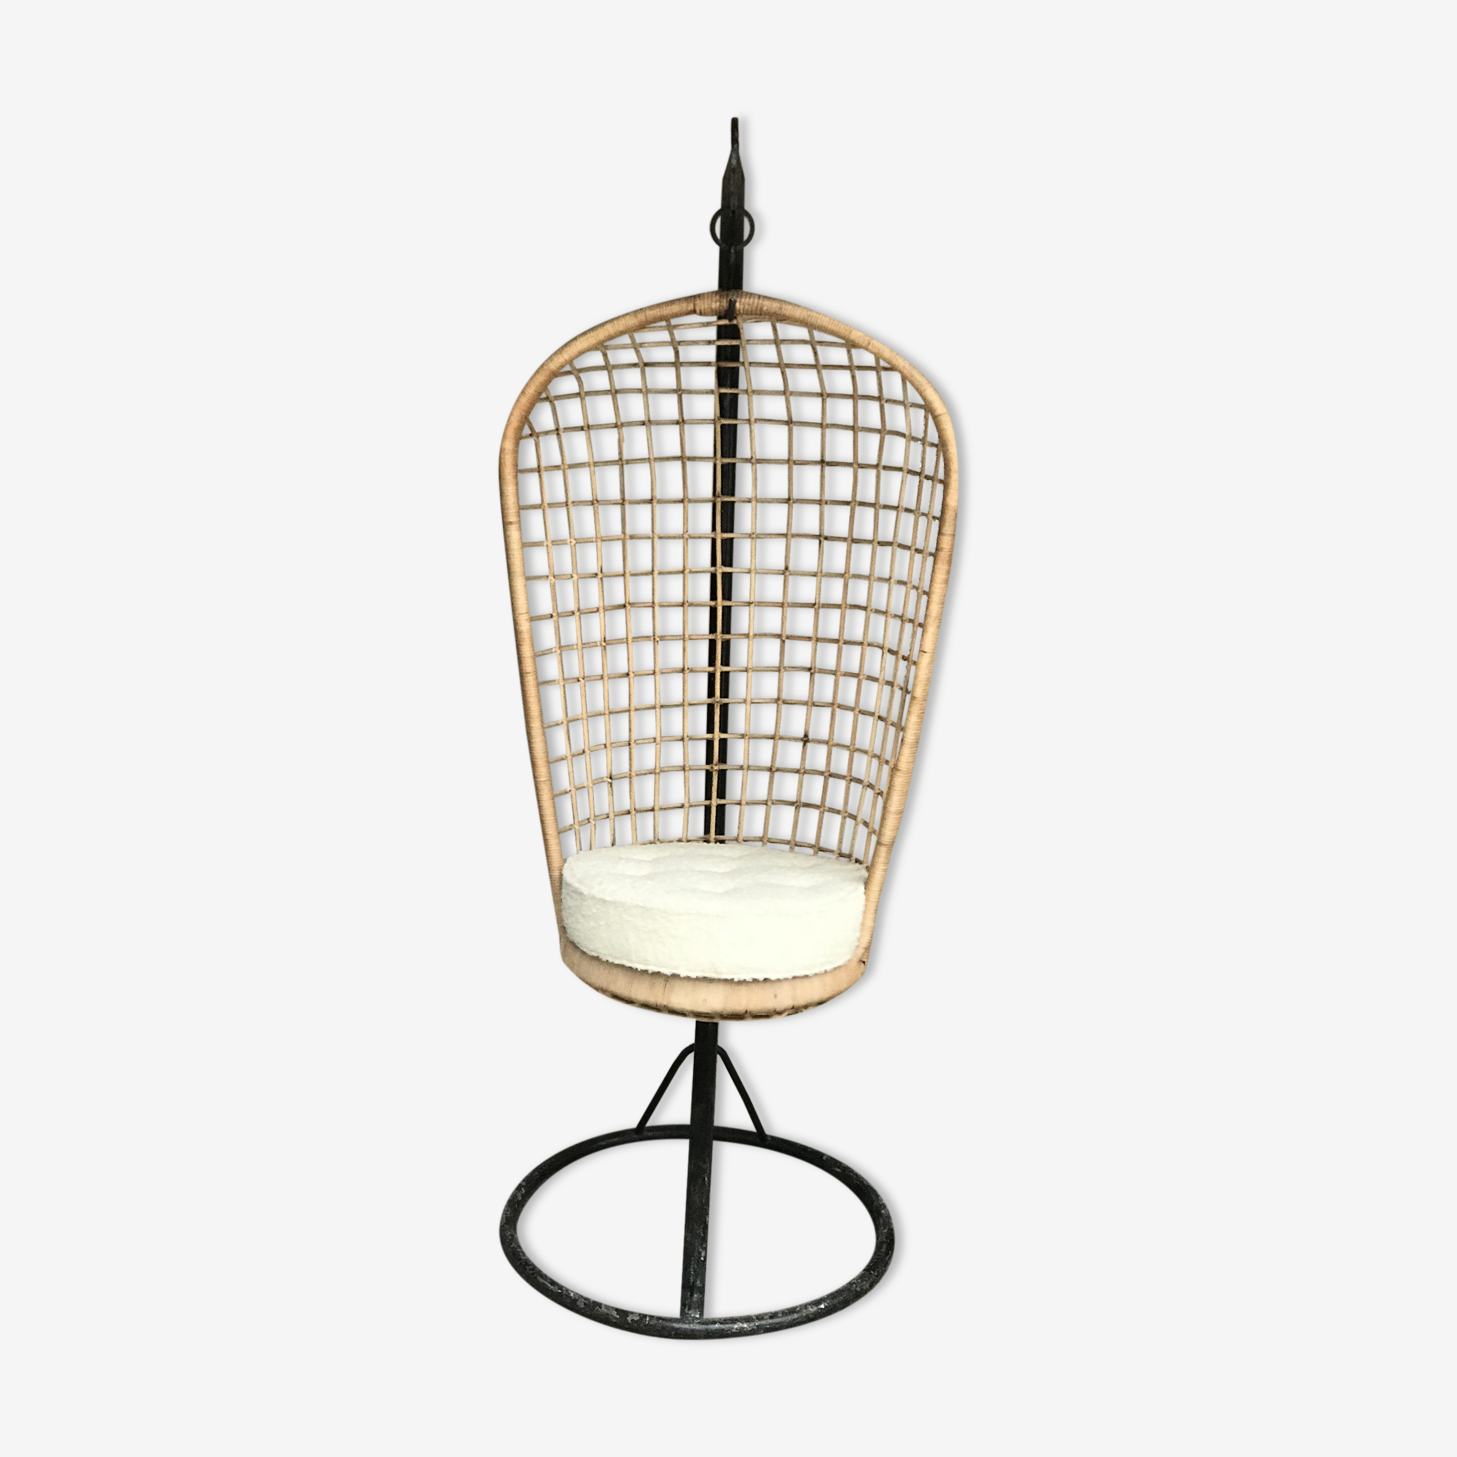 Chair suspended rattan and cushion in loop of wool